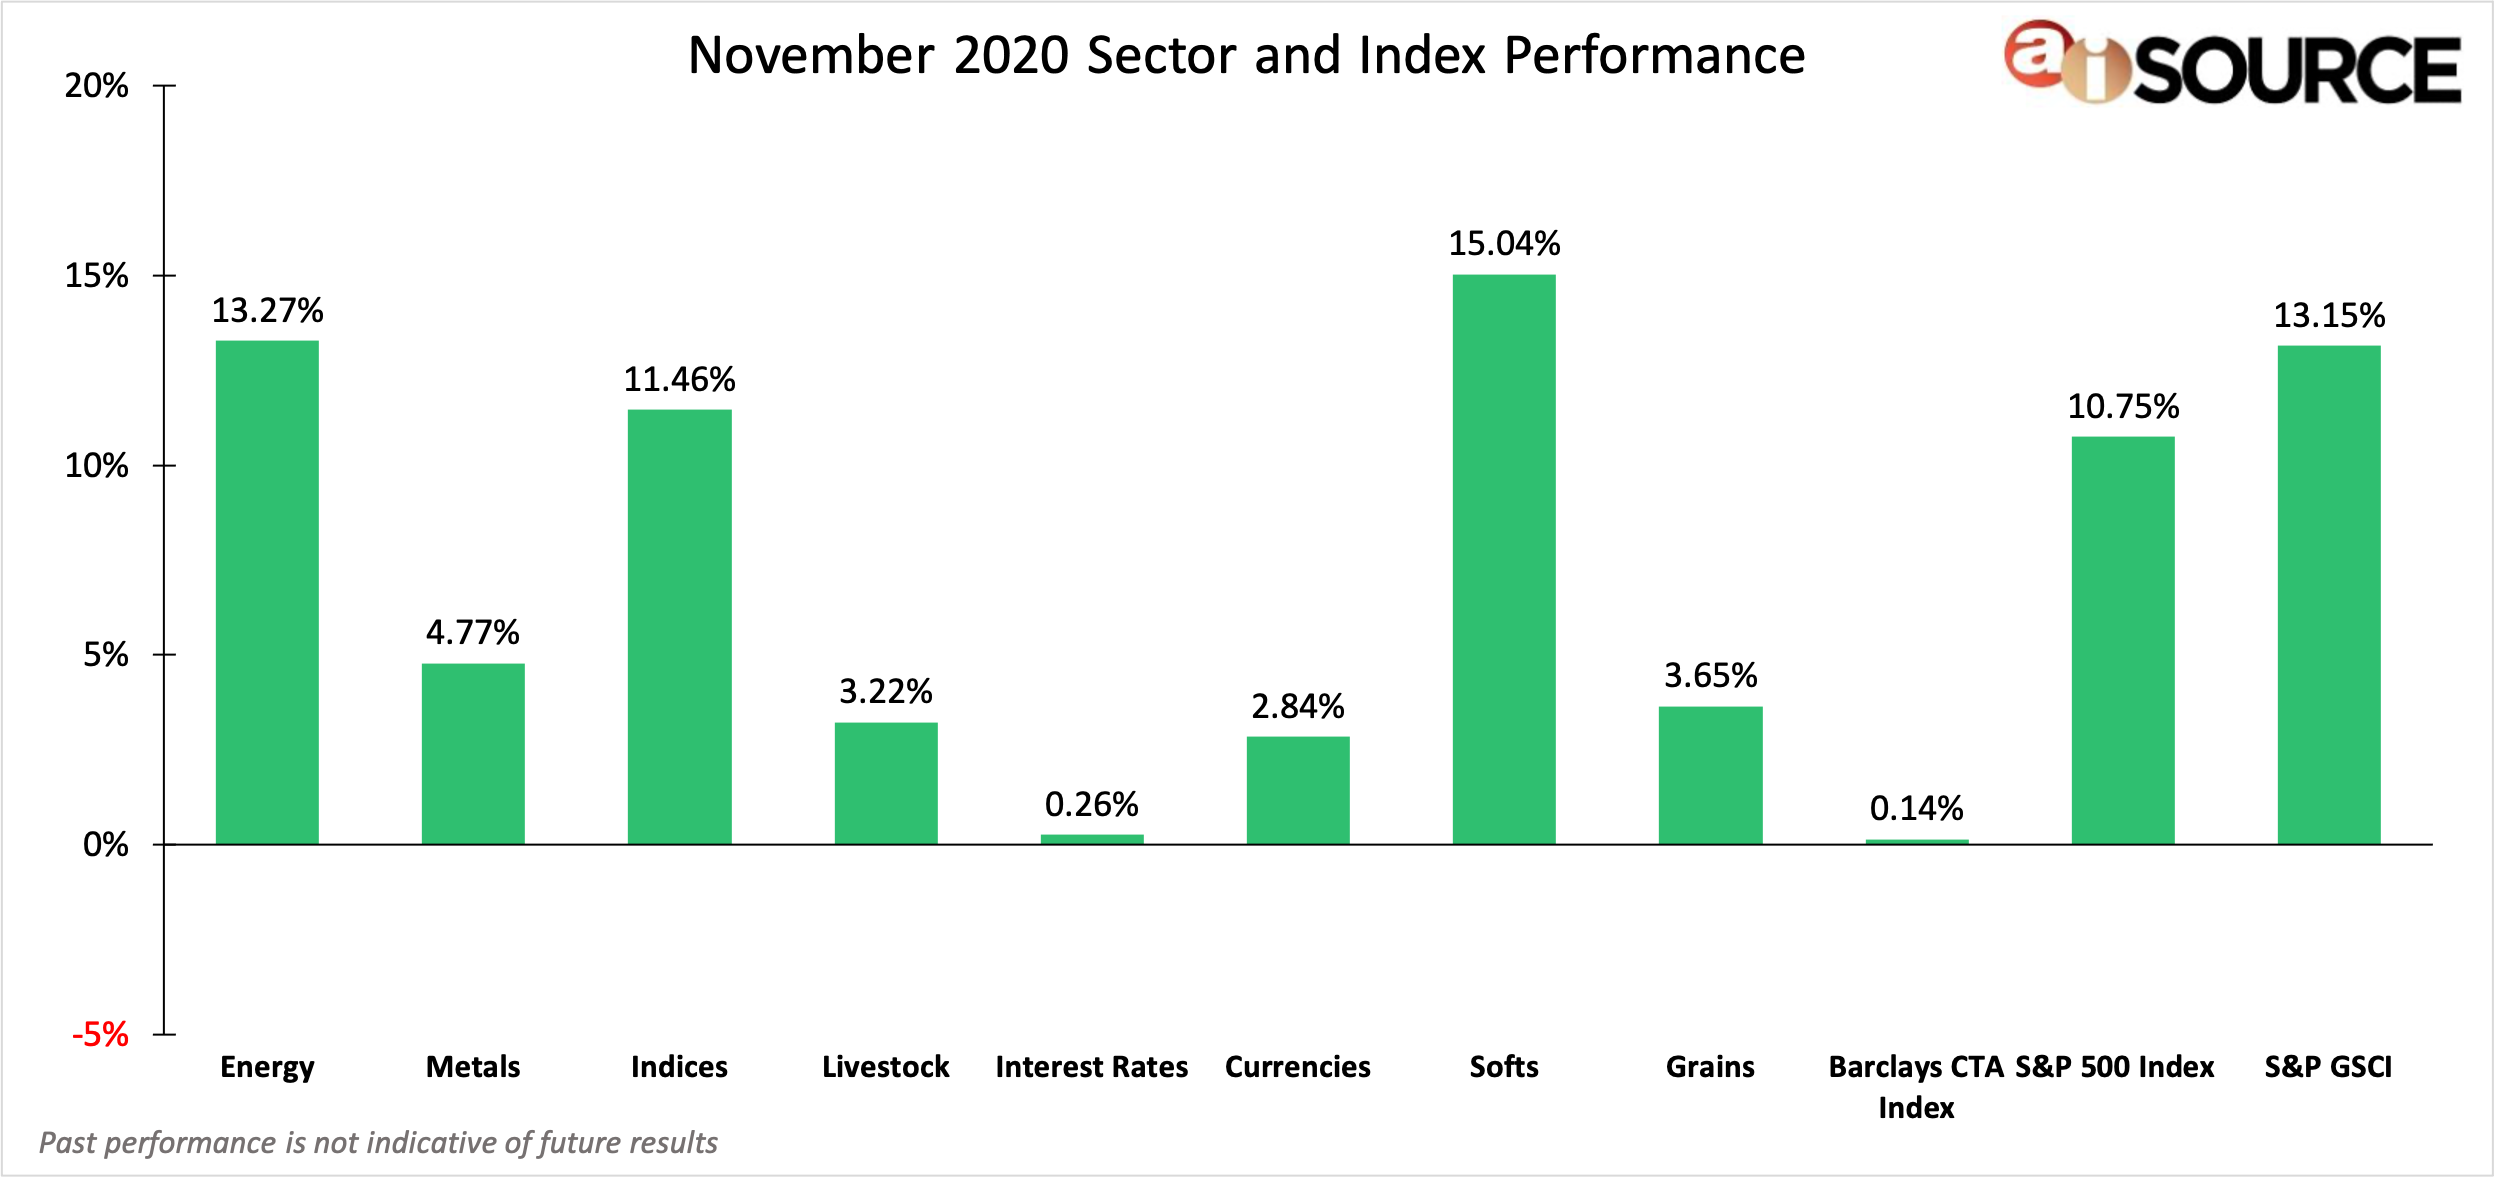 November 2020 Sector and Index Performance